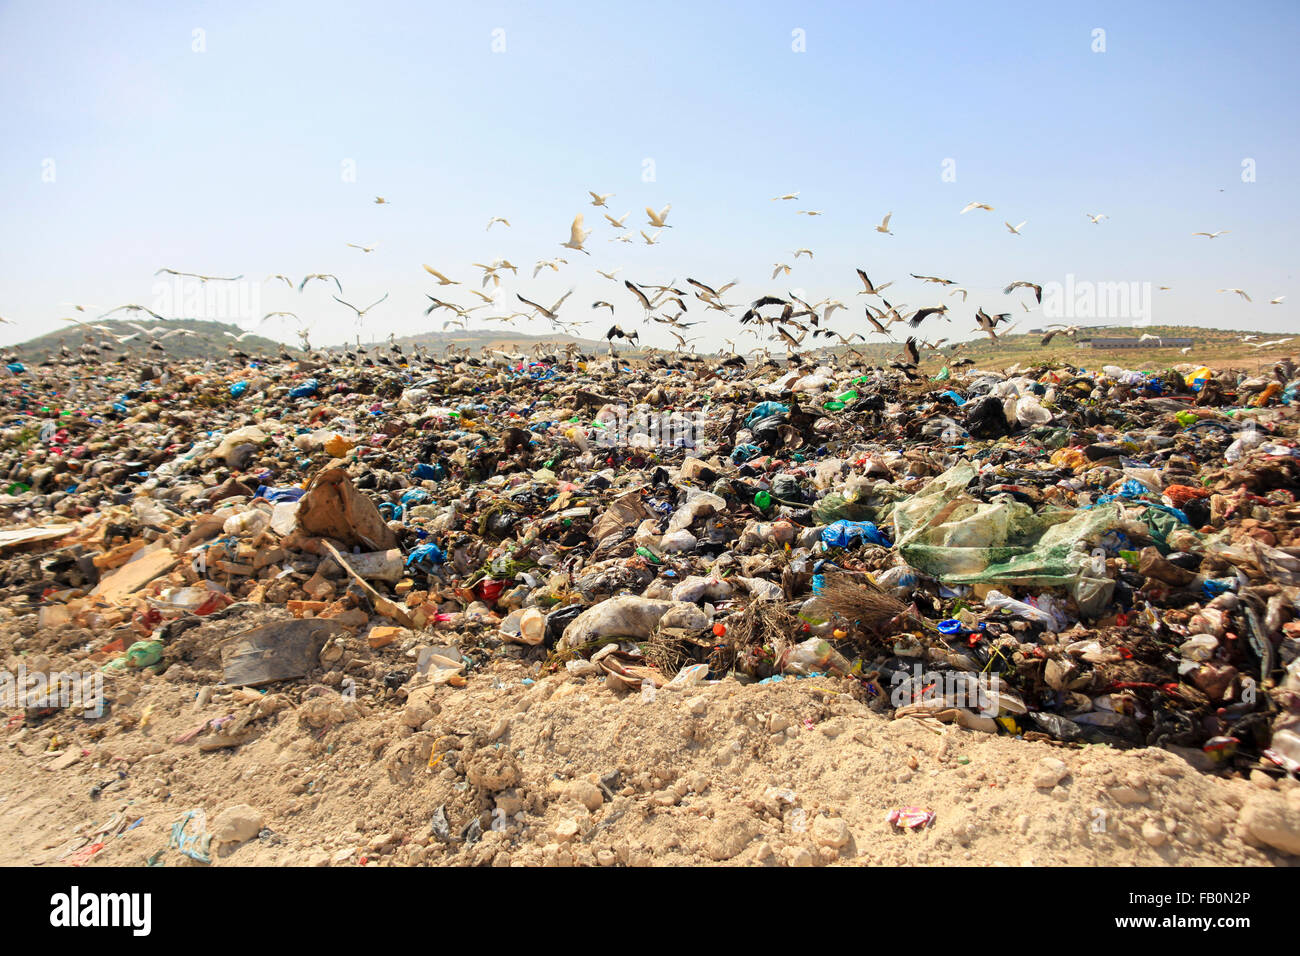 A bulldozer is arranging solid waste for a landfill site in Palestine - Stock Image